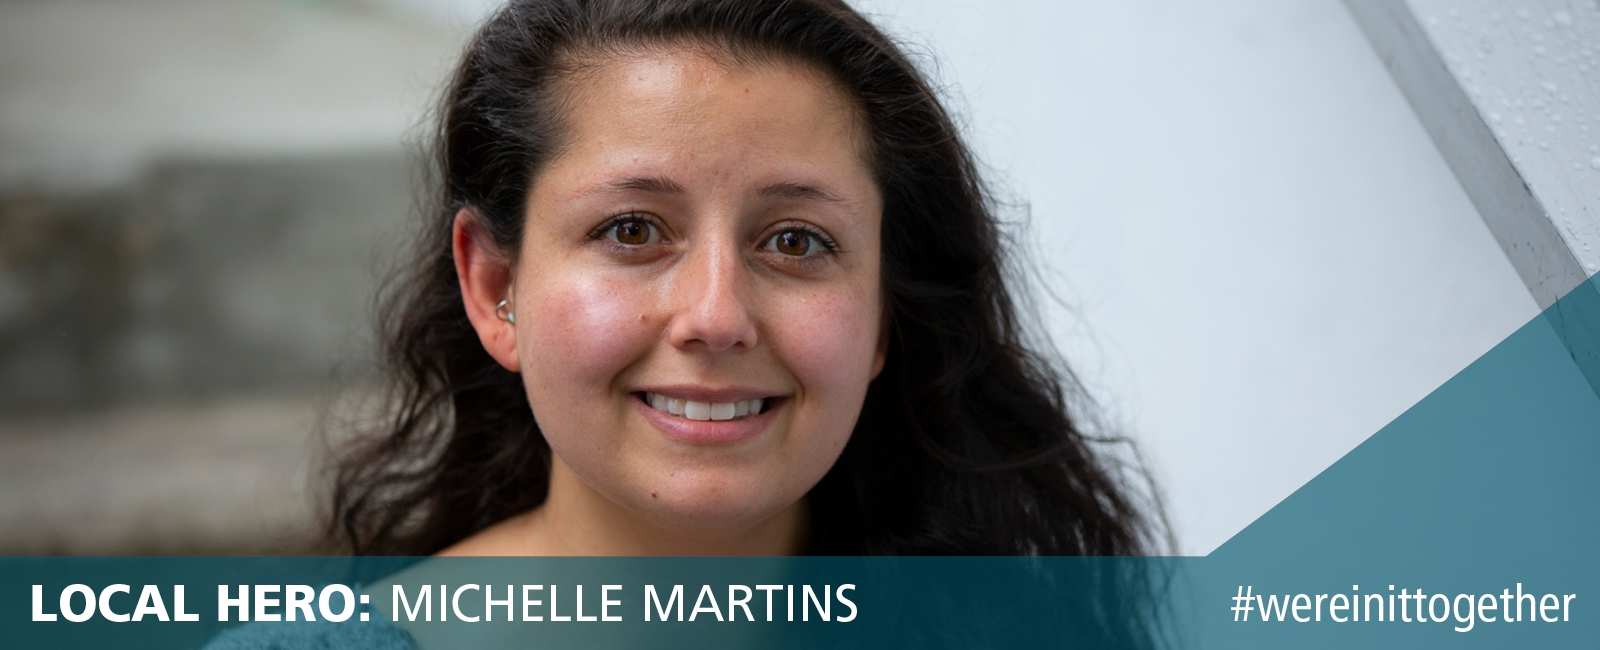 Michelle Martins, Director of Services at Tamitik Status of Women